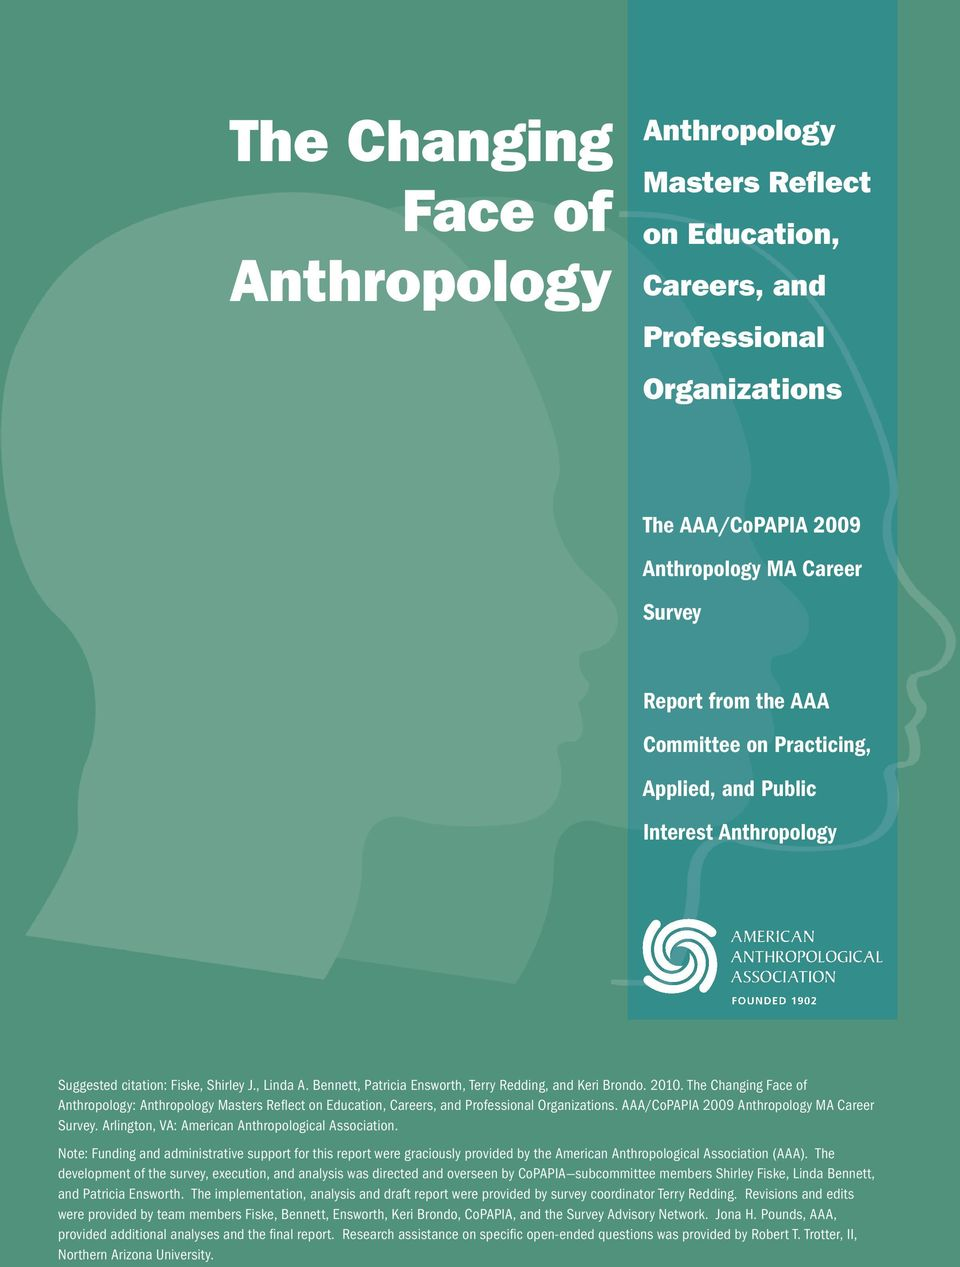 The Changing Face of Anthropology: Anthropology Masters Reflect on Education, Careers, and Professional Organizations. AAA/CoPAPIA 2009 Anthropology MA Career Survey.